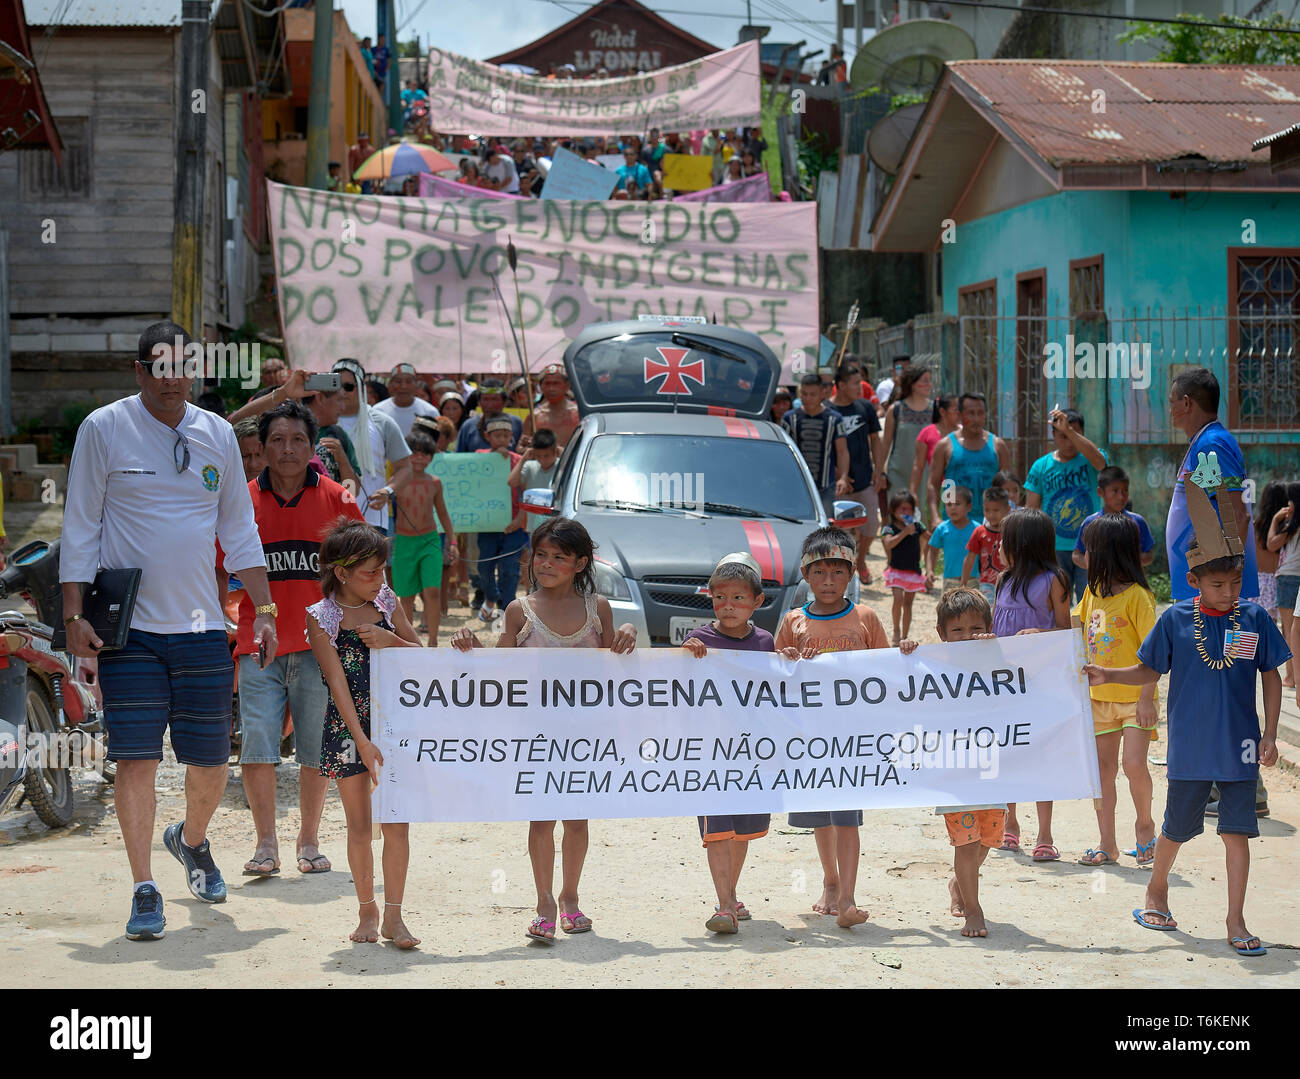 Indigenous people march through the streets of Atalaia do Norte in Brazil's Amazon region, protesting a government plan to municipalize health care. - Stock Image